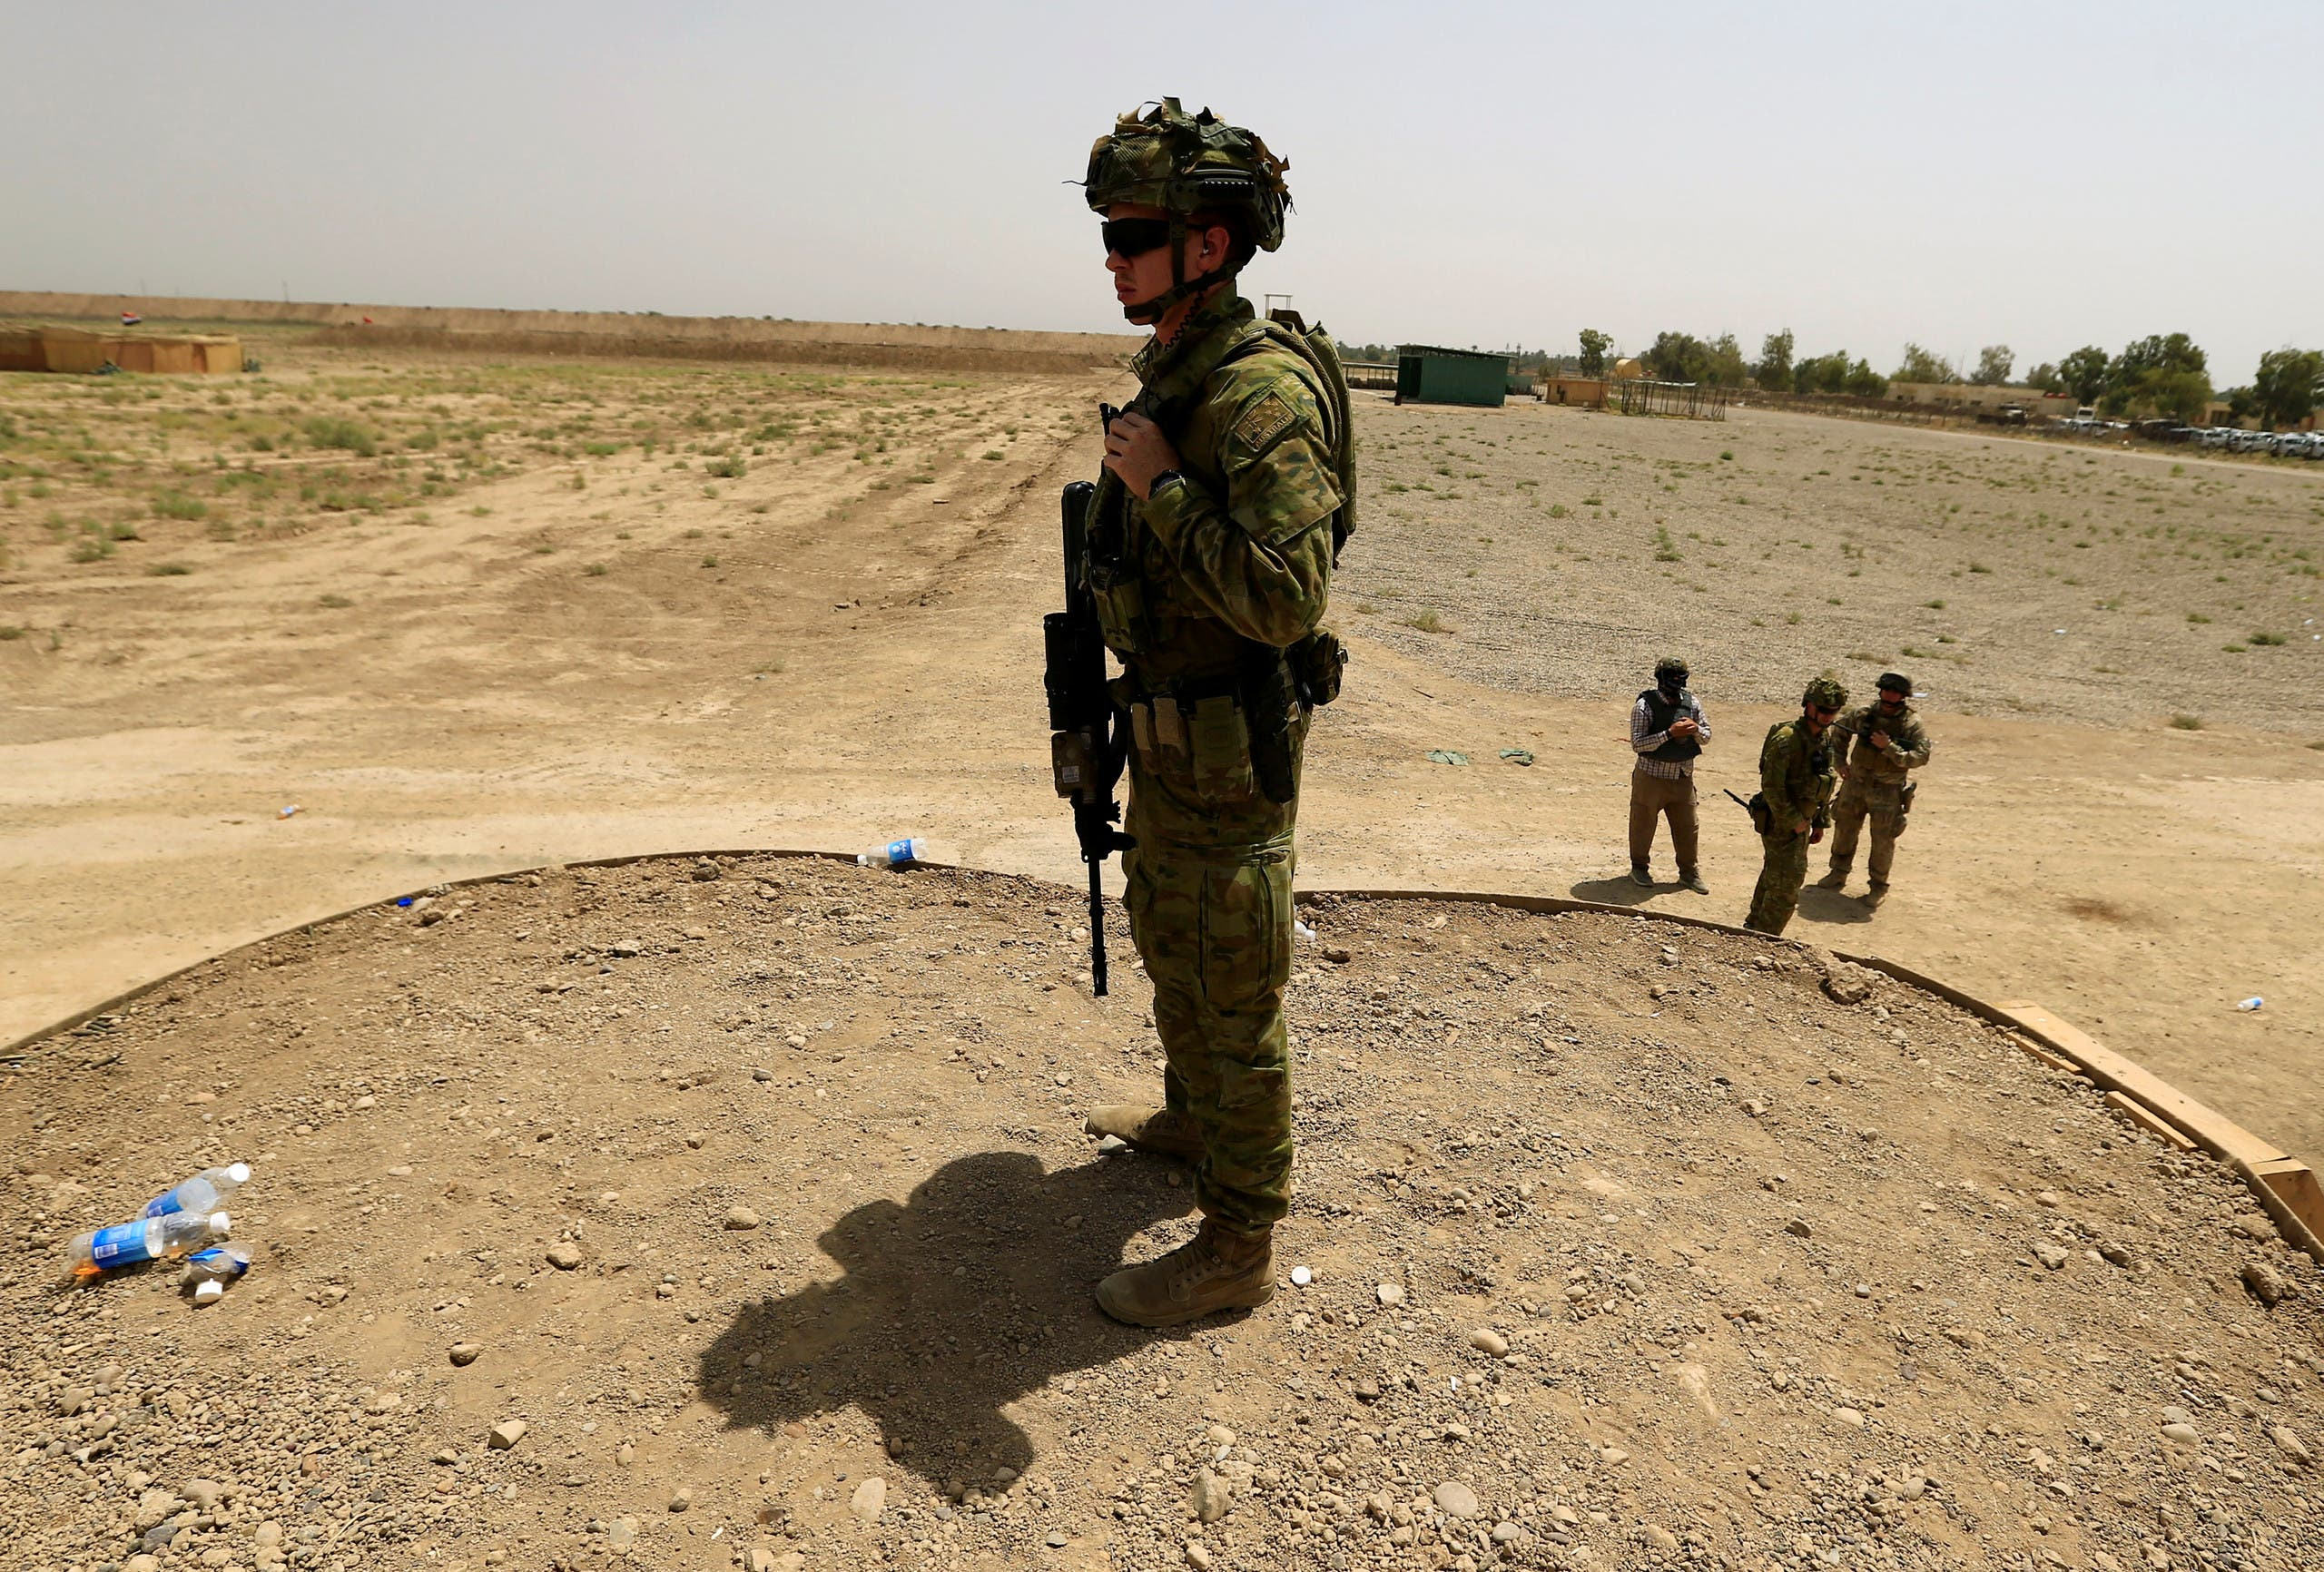 Coalition forces instructors monitor as they train Iraqi Army's 53rd Brigade in a live ammunition training exercise at Taji military base north of Baghdad, Iraq, on August 9, 2017. (Reuters)